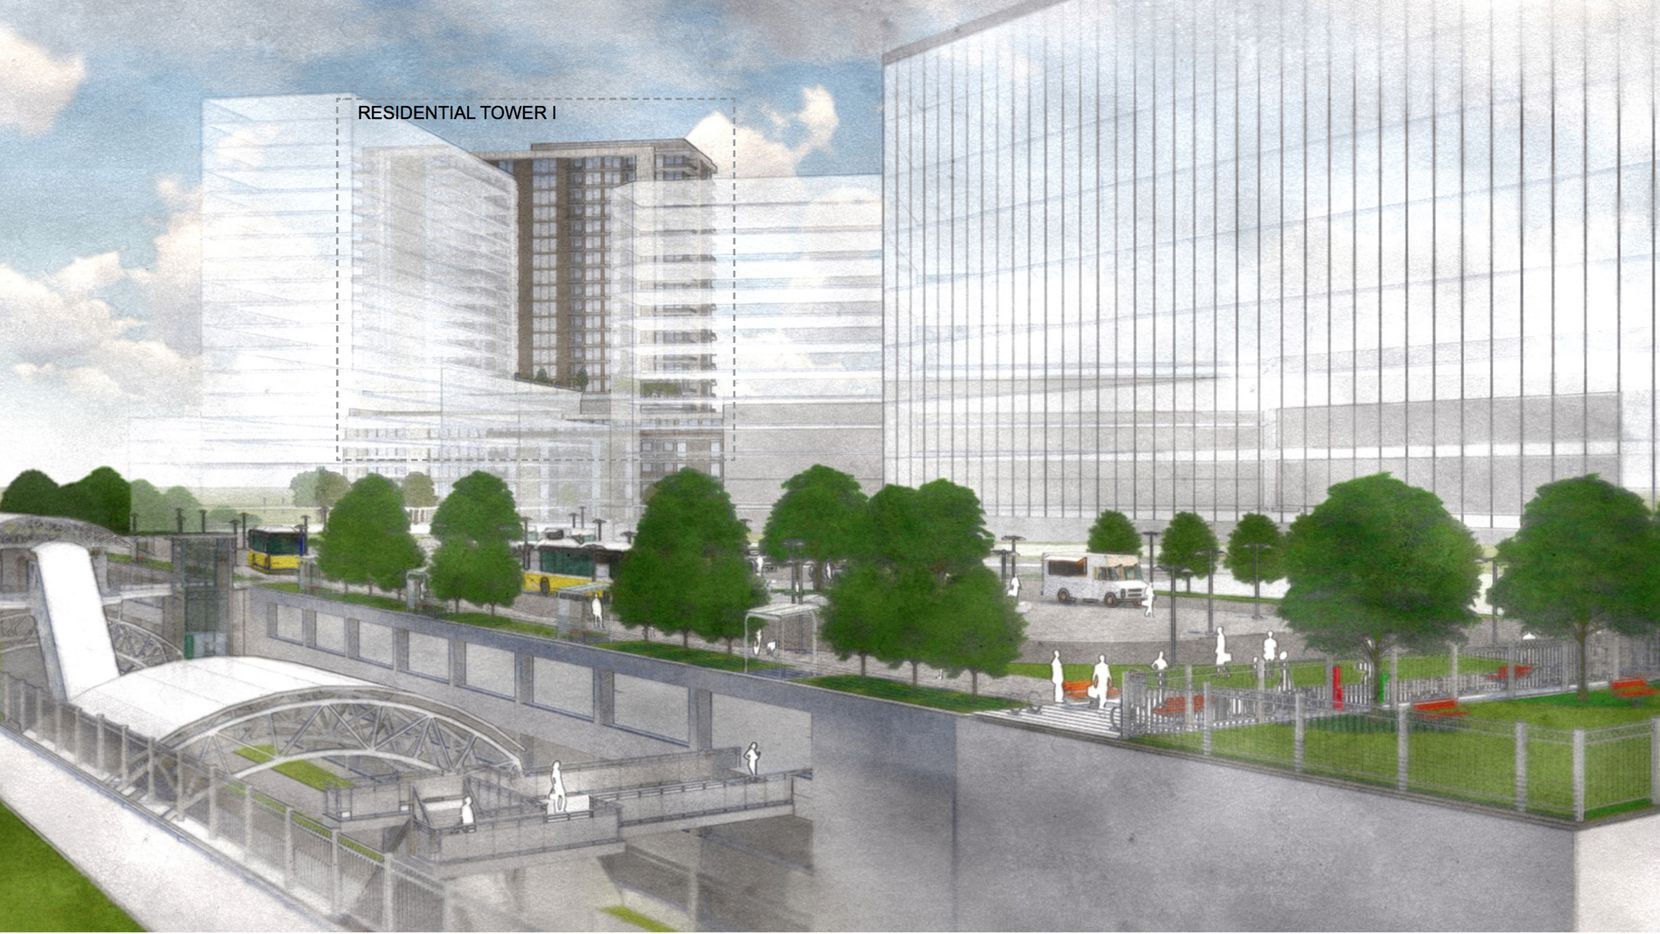 Four towers are planned on what are now the parking lots for the DART commuter rail station.